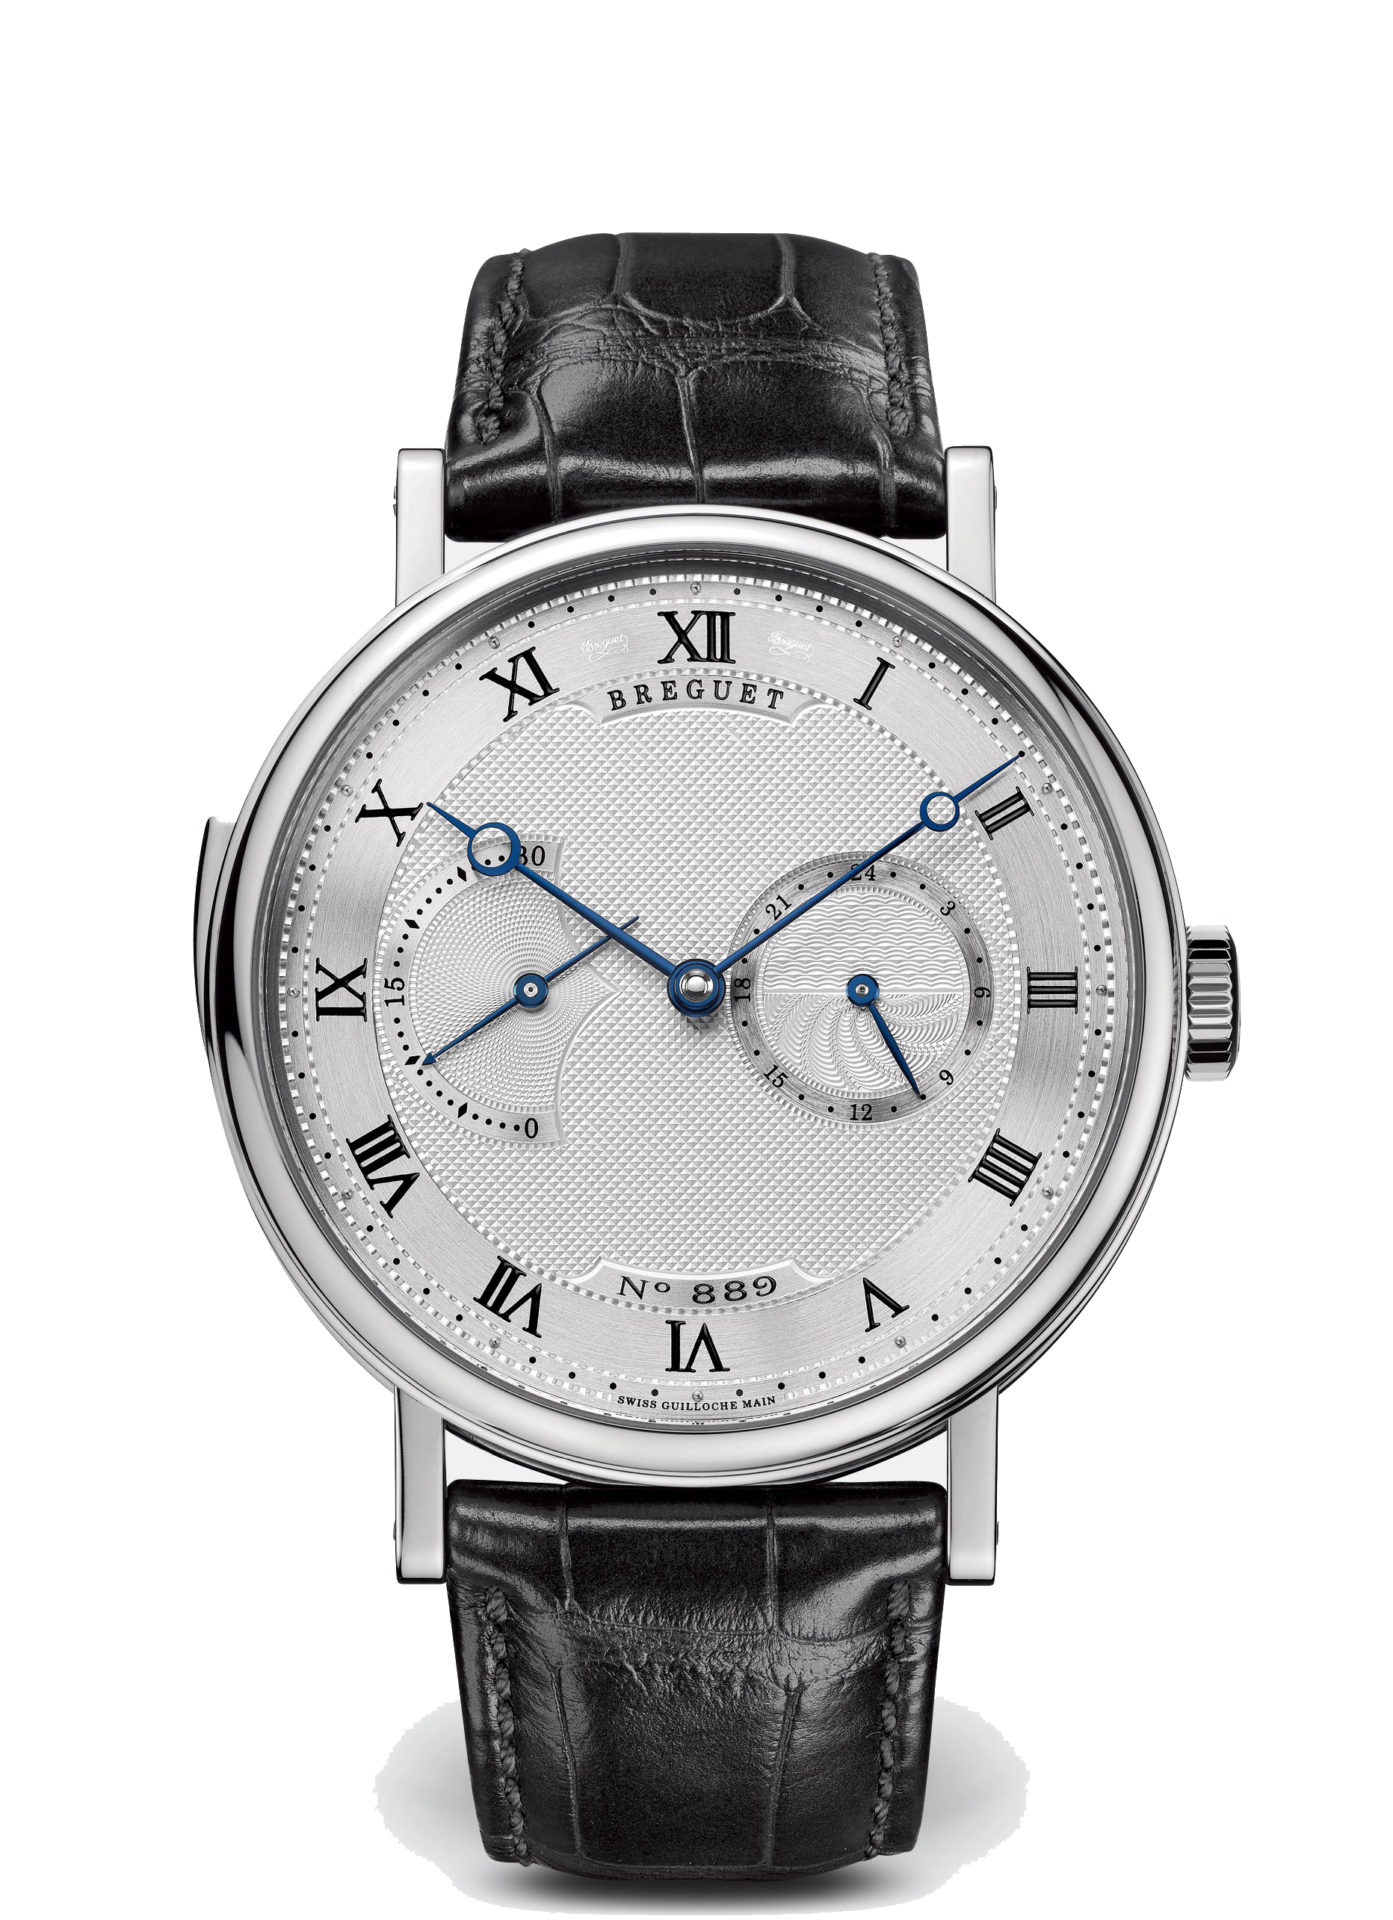 Breguet-Classique-Complications-Répétition-Minutes-7637-Hall-of-Time-7637bb-12-9zu